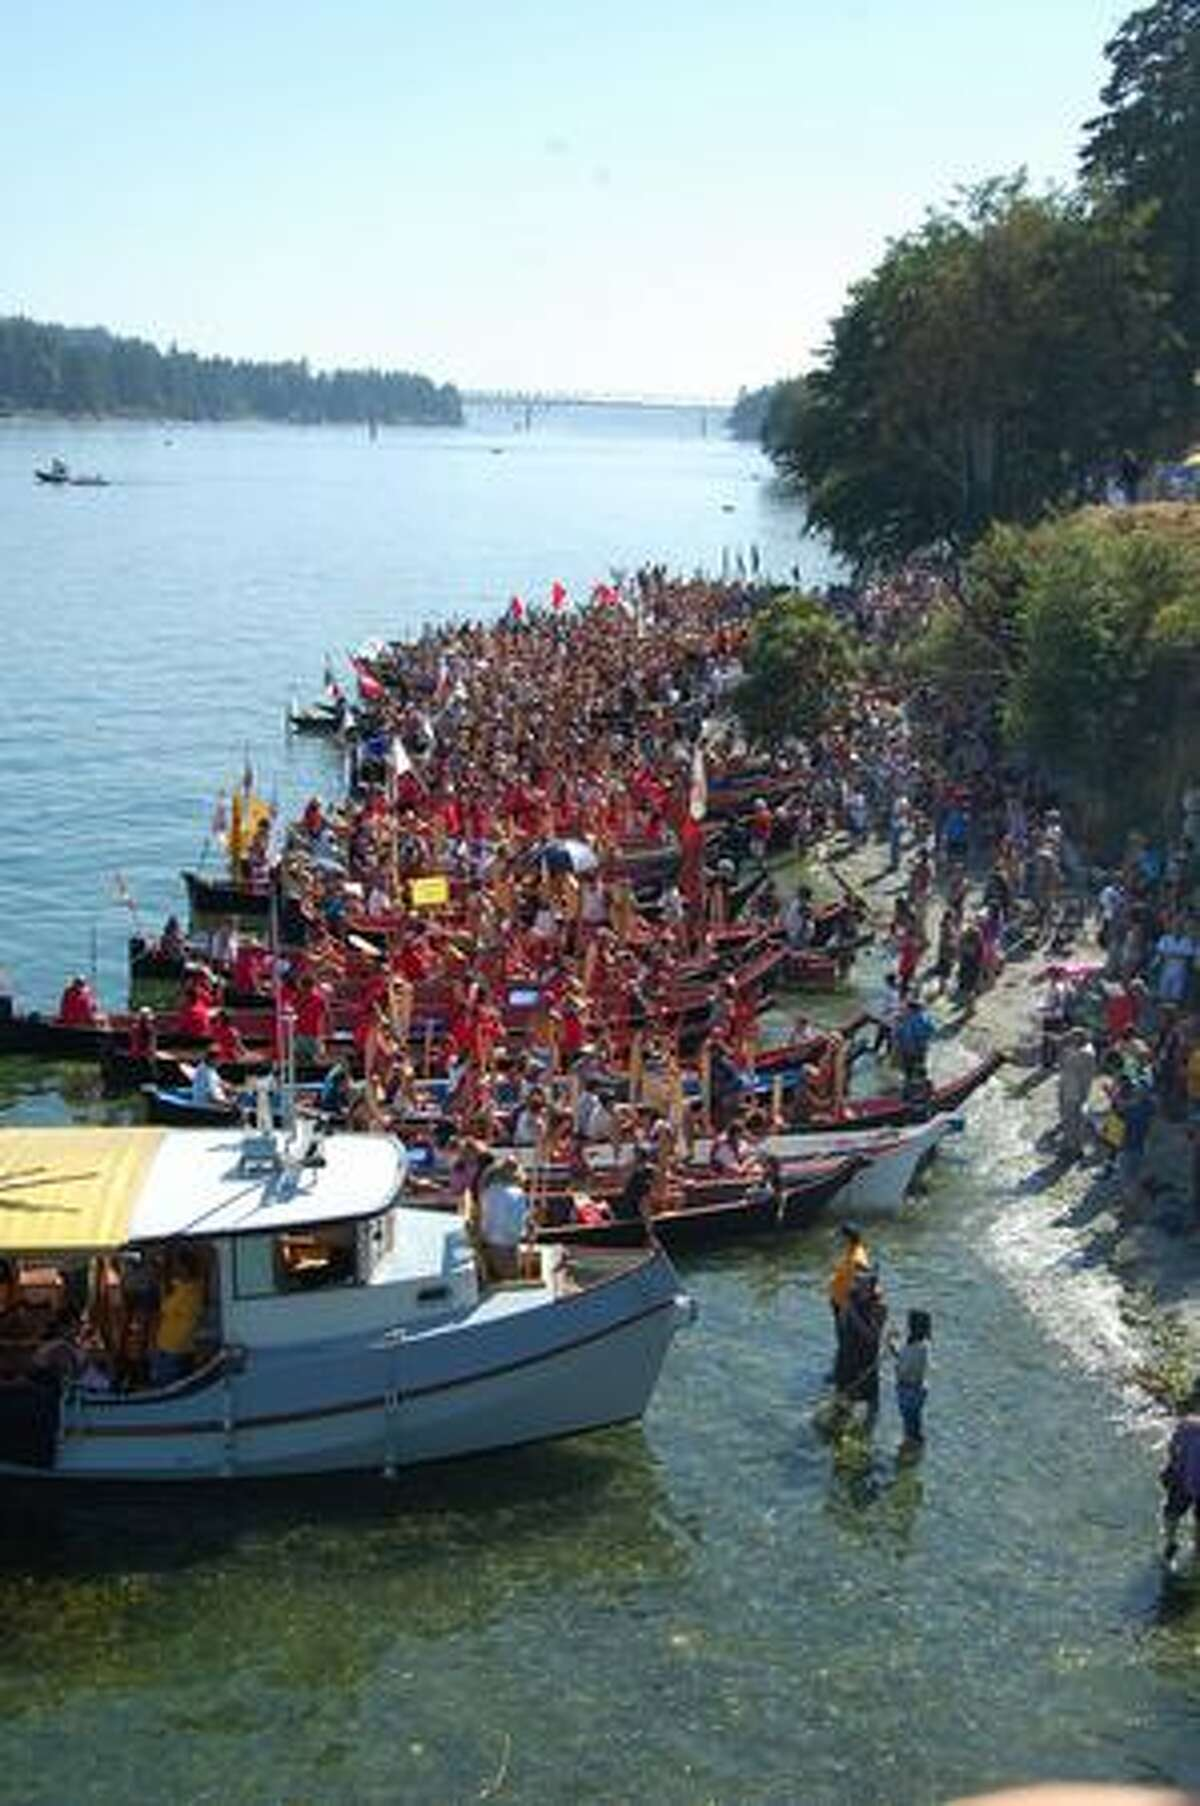 About 100 canoes arrive at the Suquamish shore Monday afternoon as more are en route. Native American canoes from several Northwest tribes took part in the landing, the culmination of an annual event known as